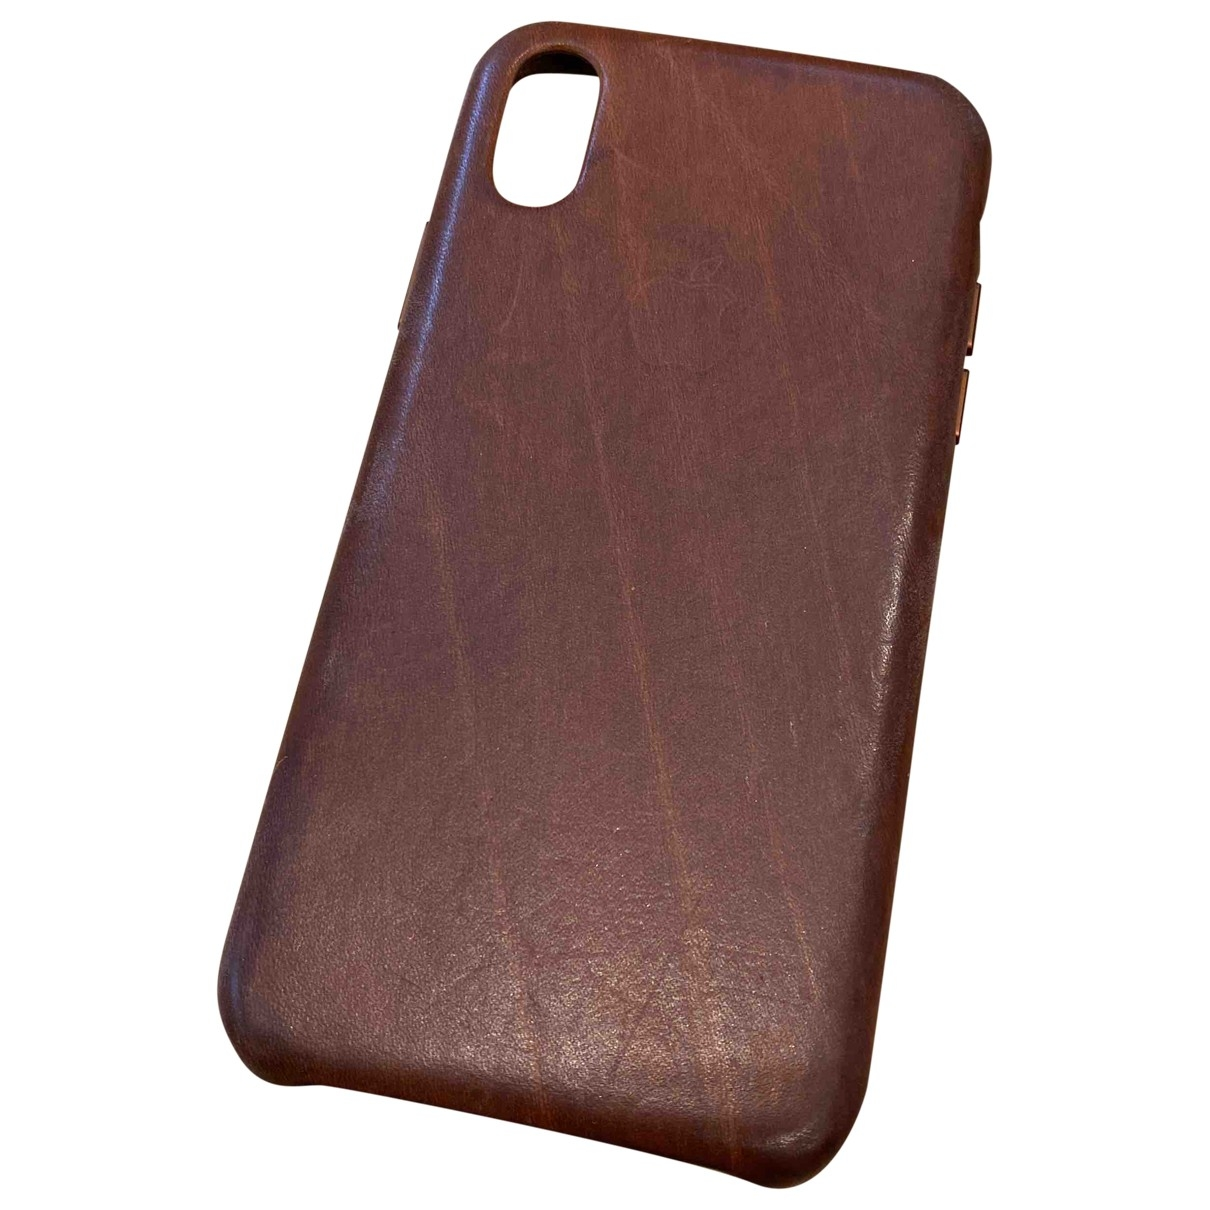 Apple \N Brown Leather Accessories for Life & Living \N